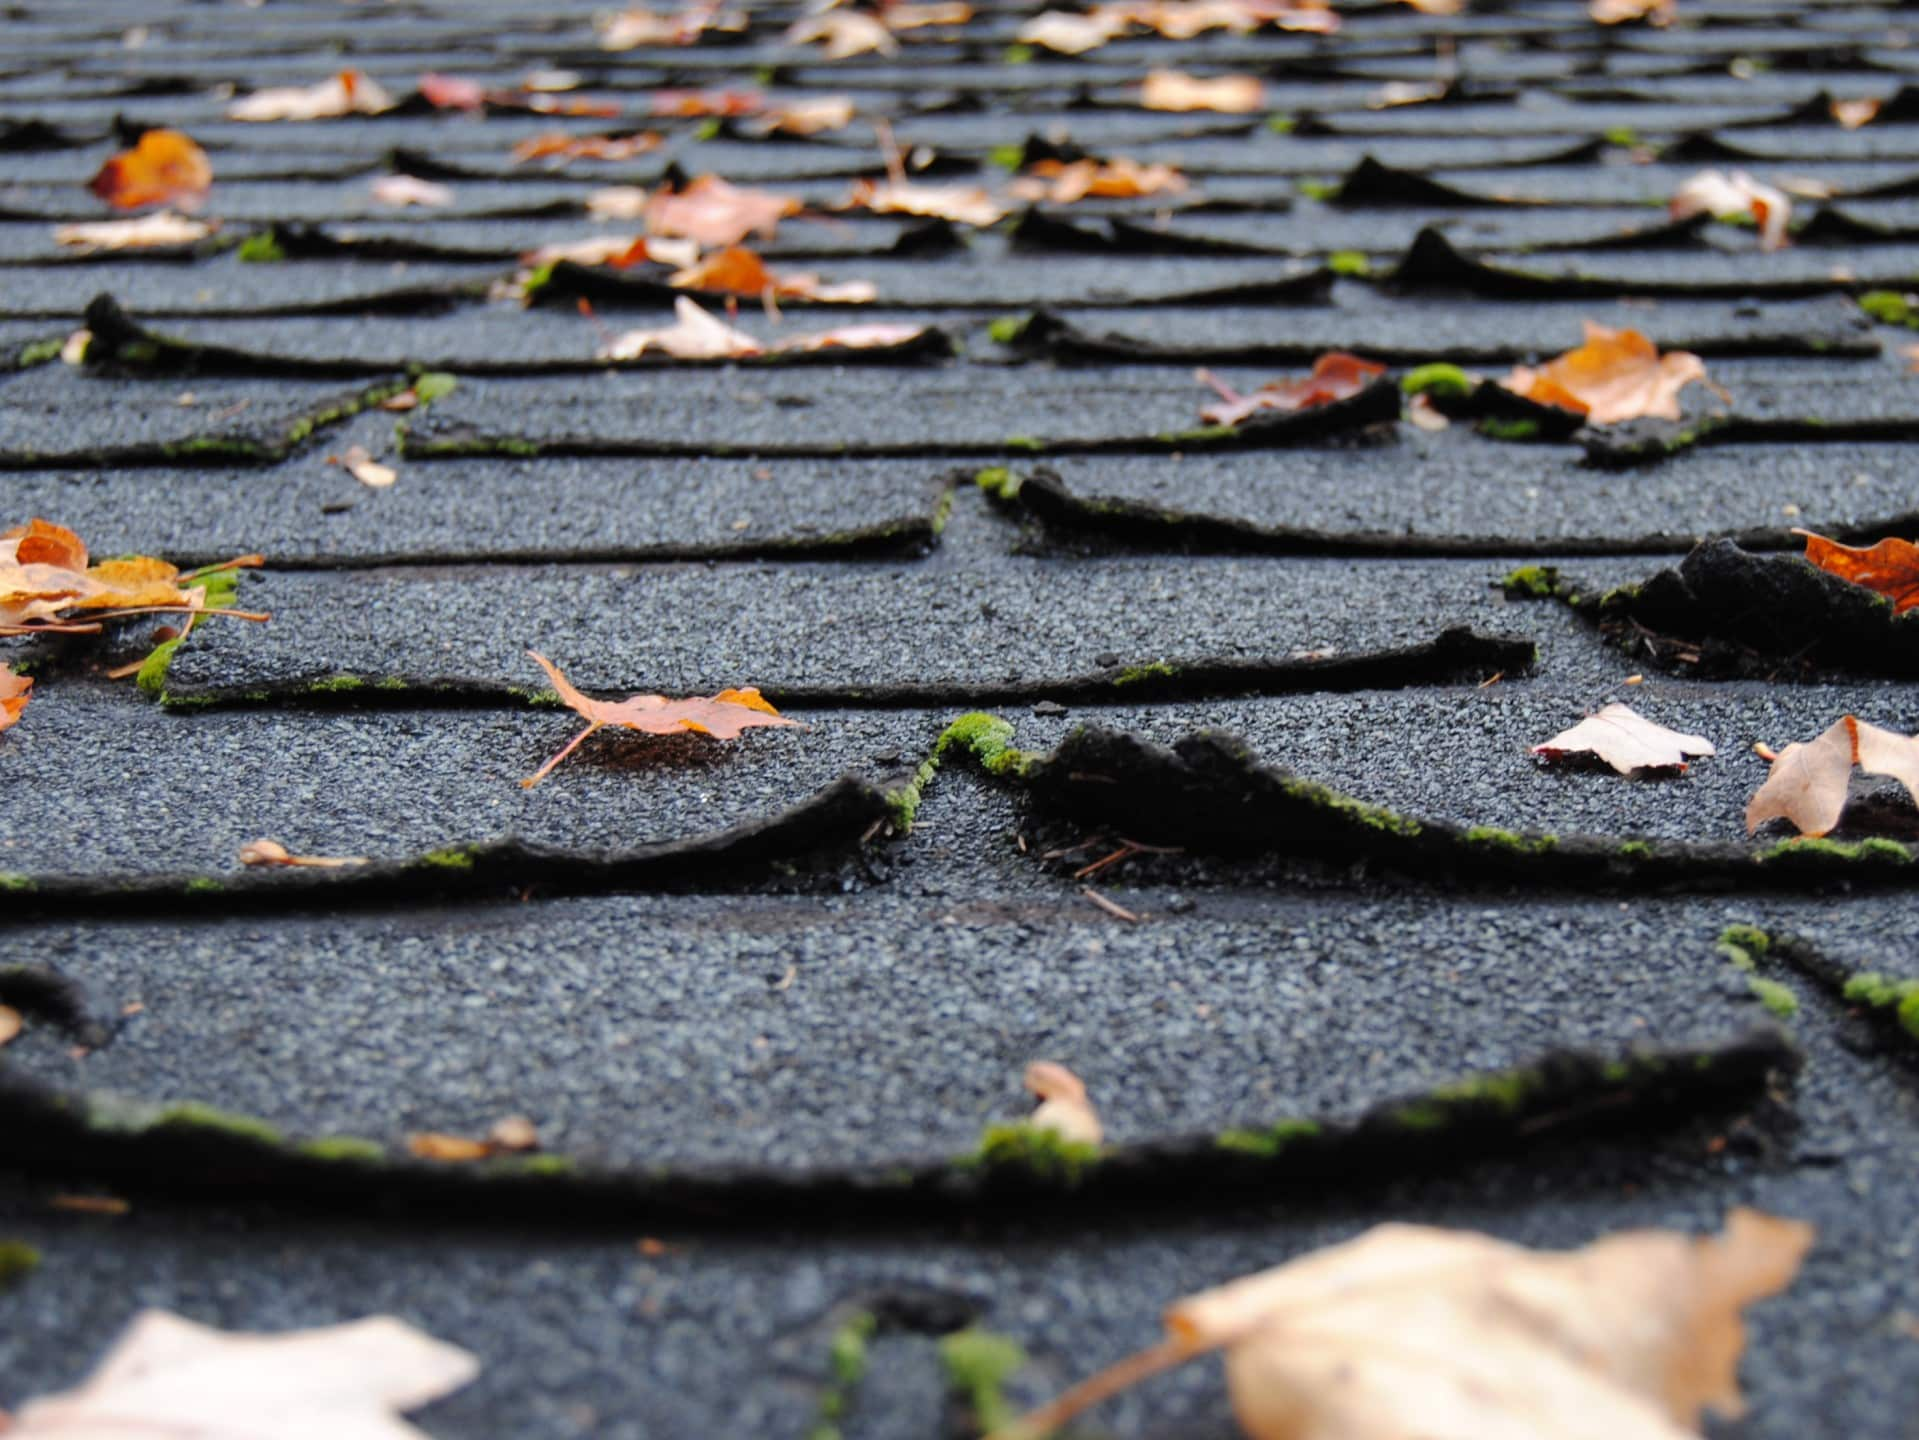 old shingles showing signs of needing a new roof